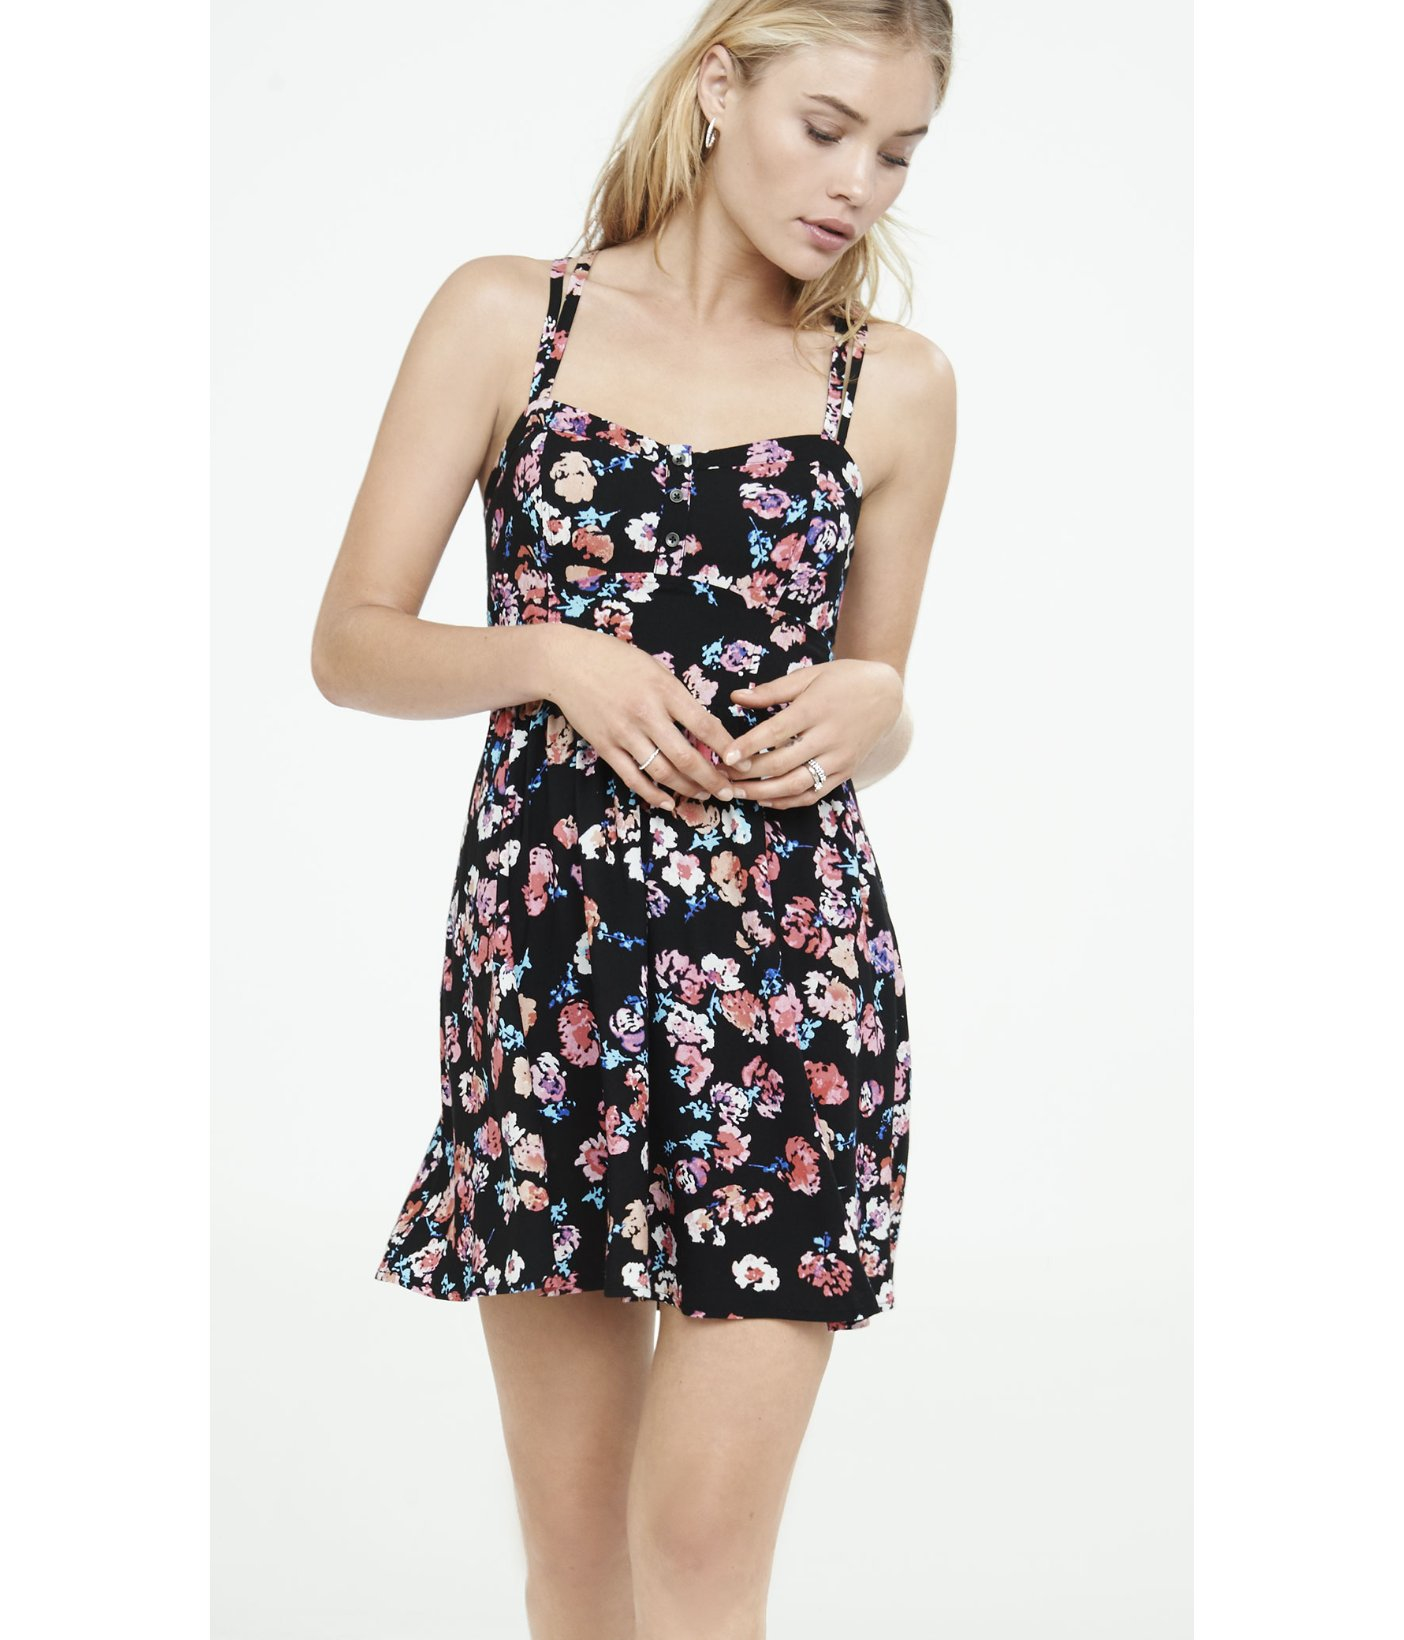 1d72cf5be5 Express Floral Print Strappy Cami Sundress in Black - Lyst